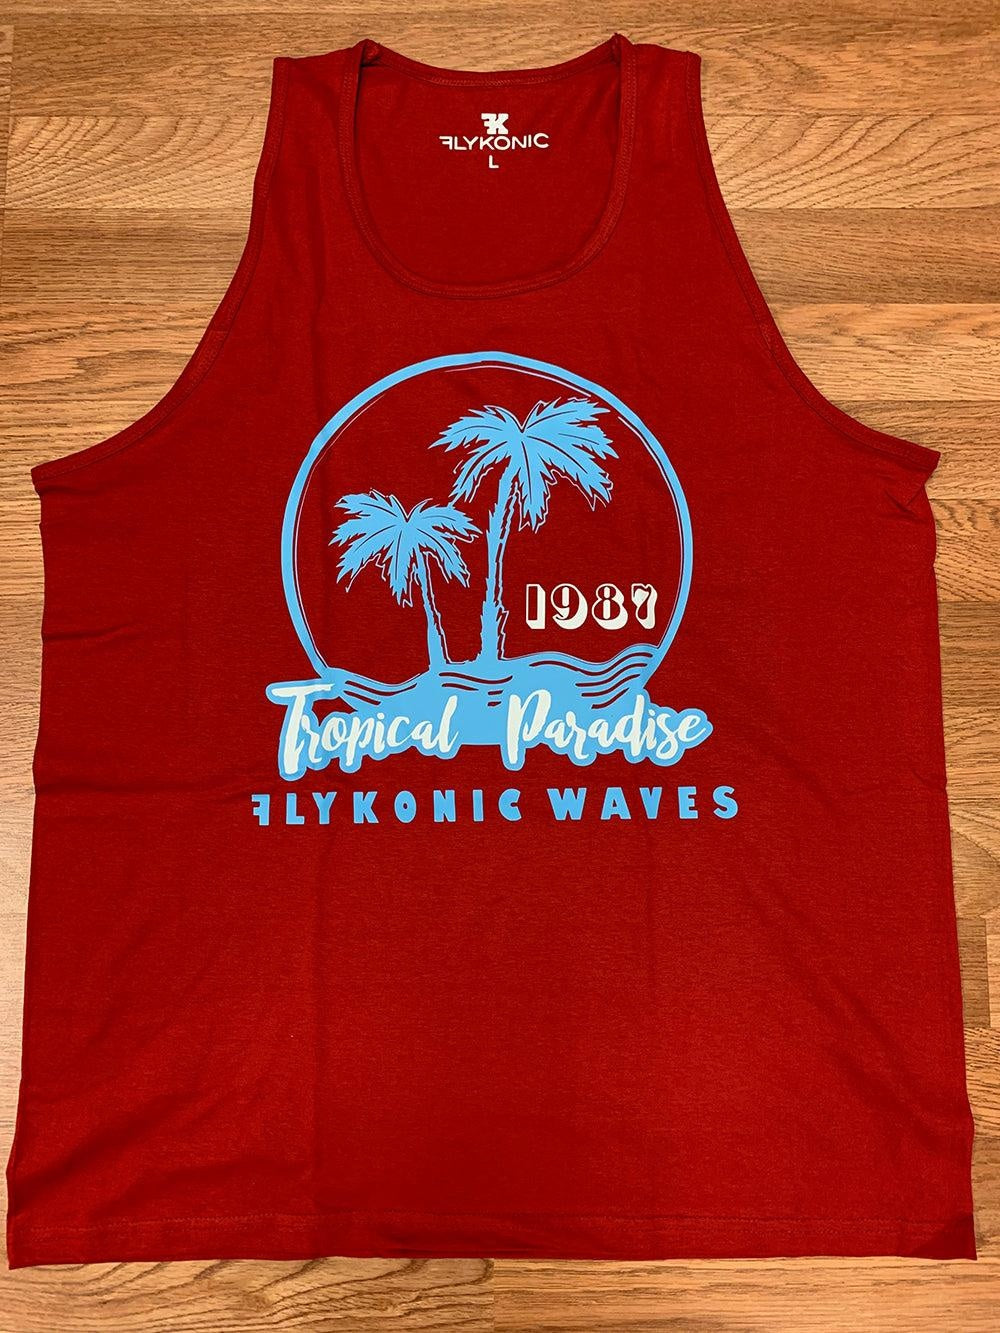 Flyknoic Waves Tropical Paradise Tank Top in Red